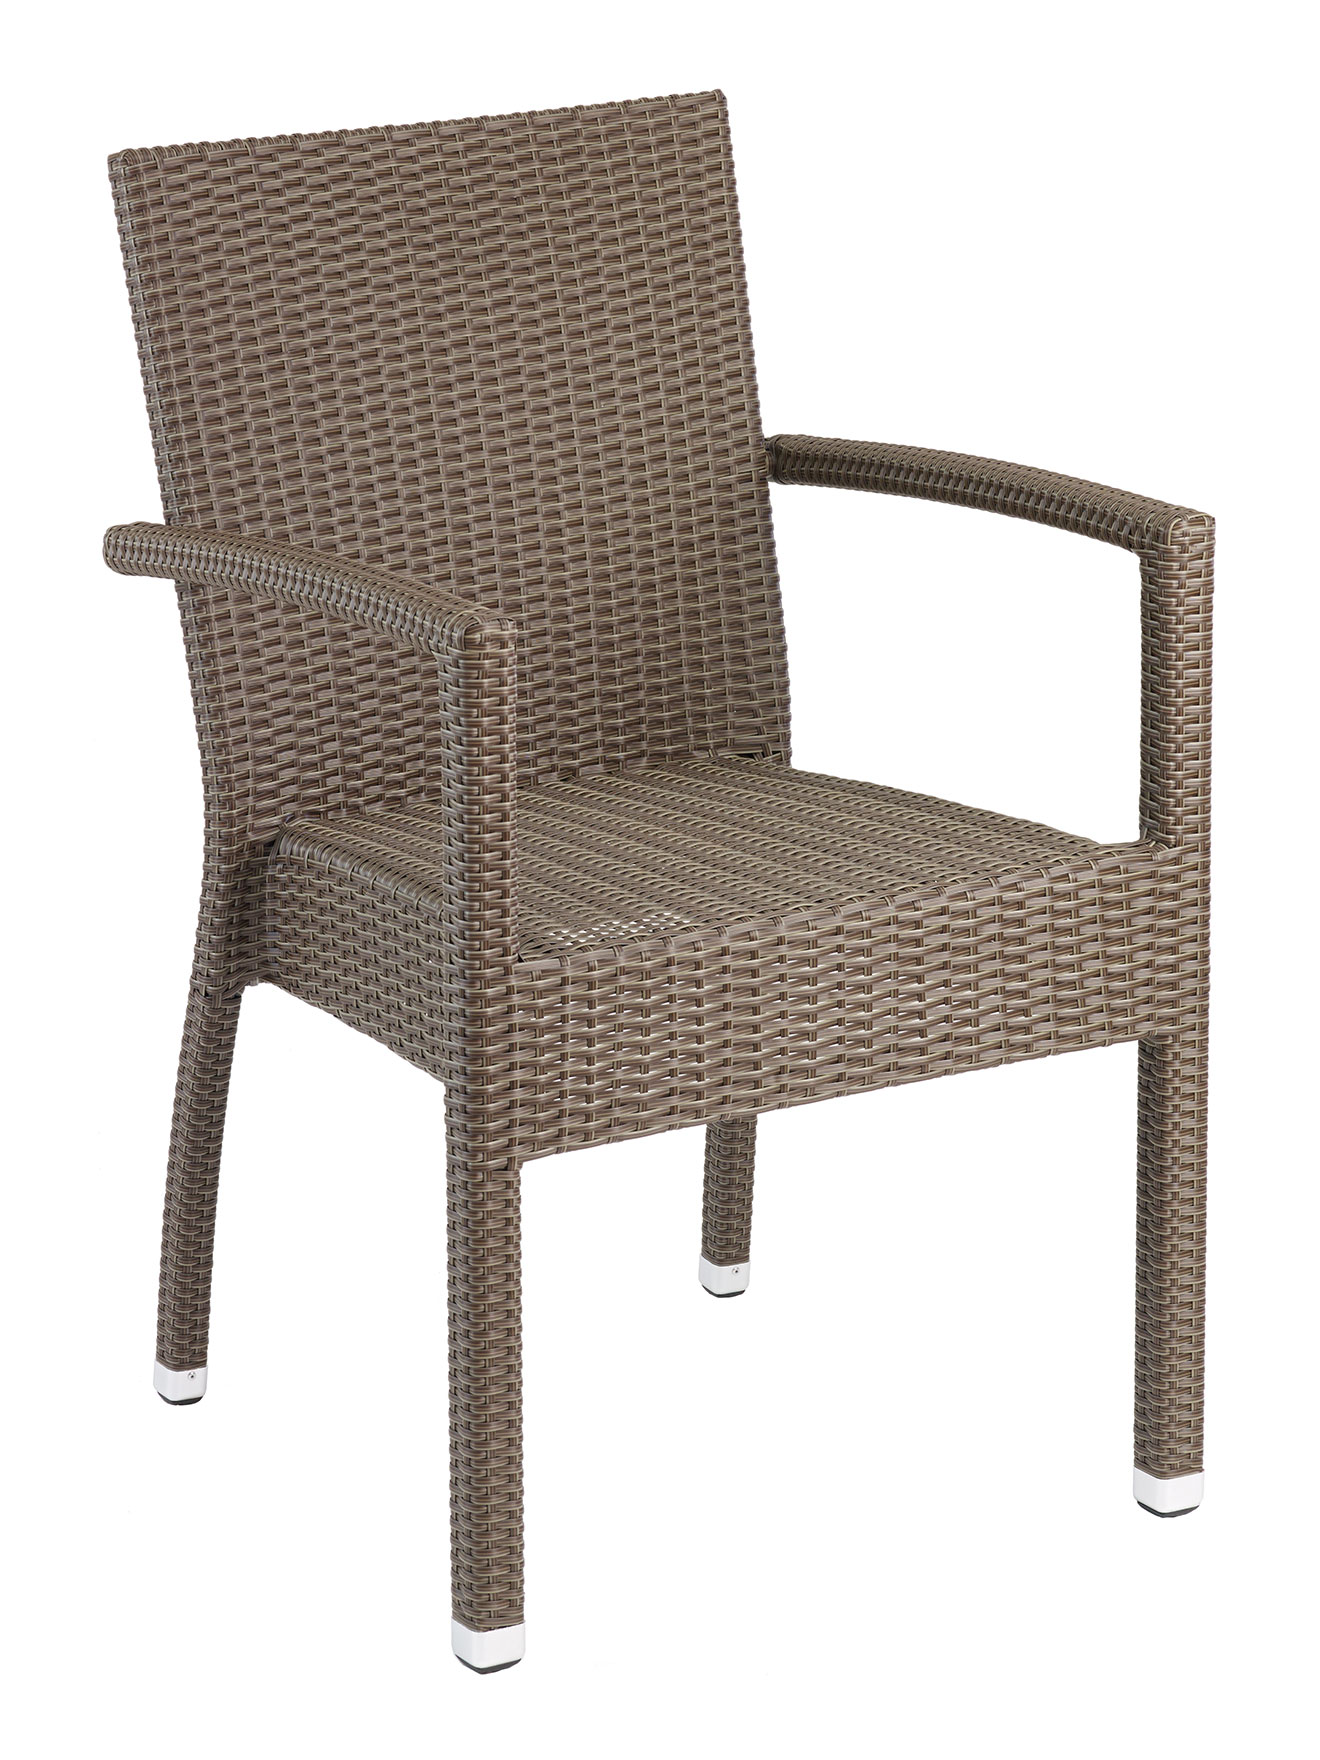 key west chairs ideas for painting adirondack wicker wrapped arm chair sw01c commercial